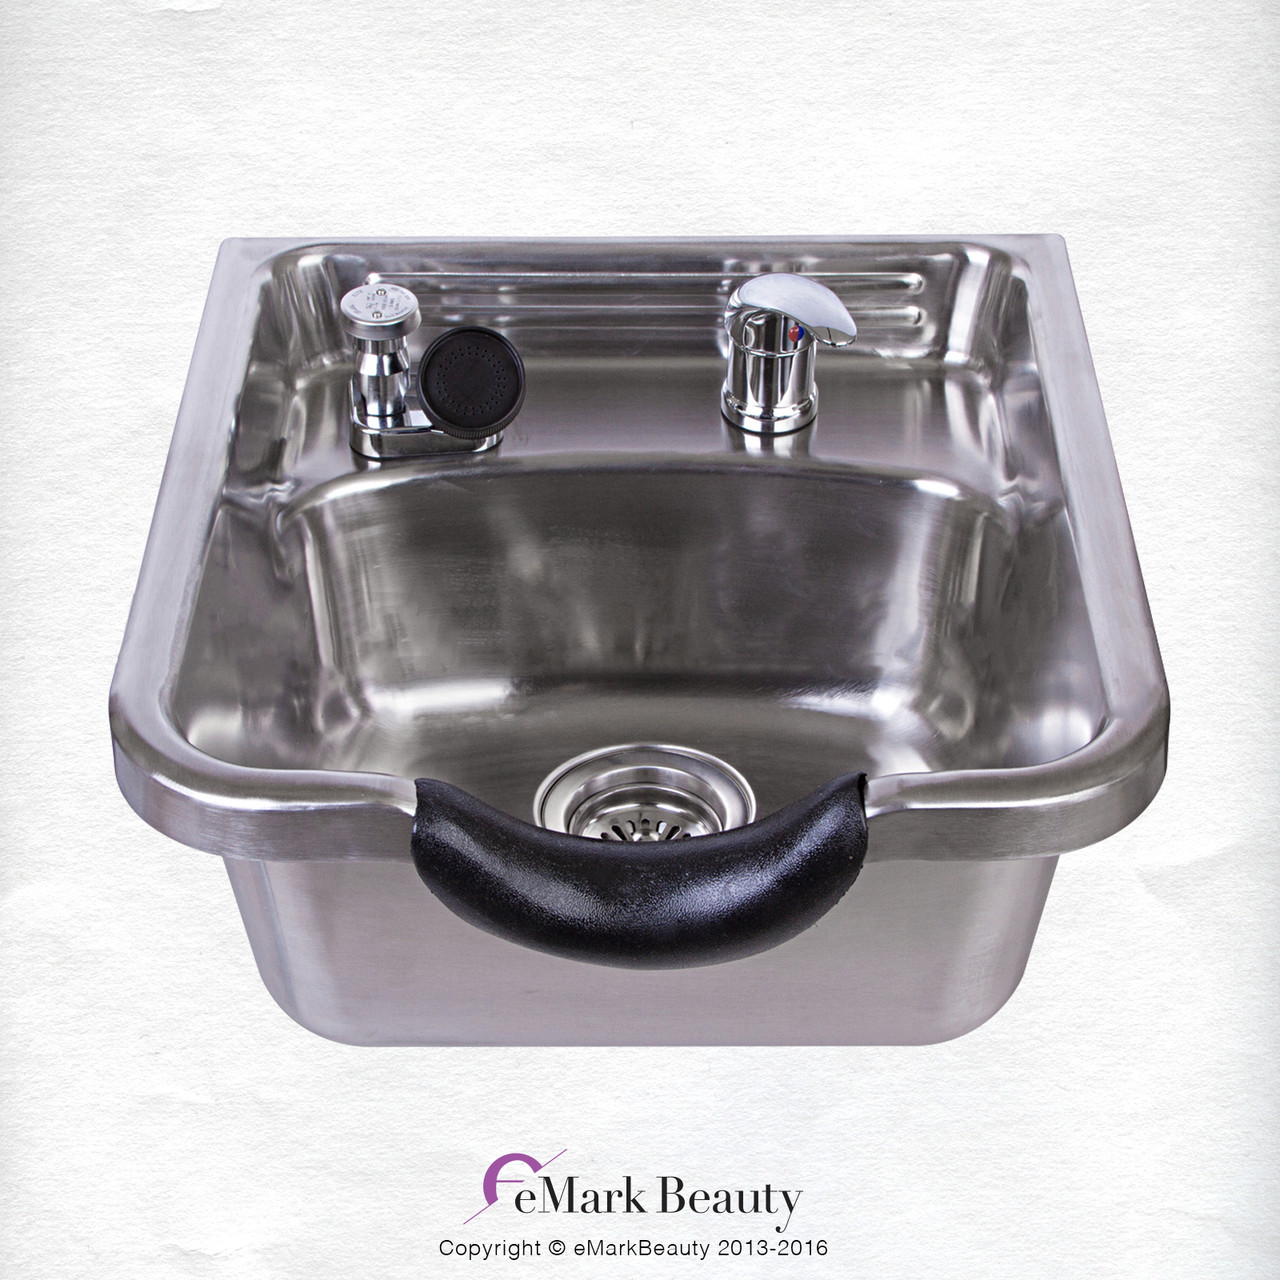 A Stainless Steel Shampoo Bowl Brushed TLC 1167